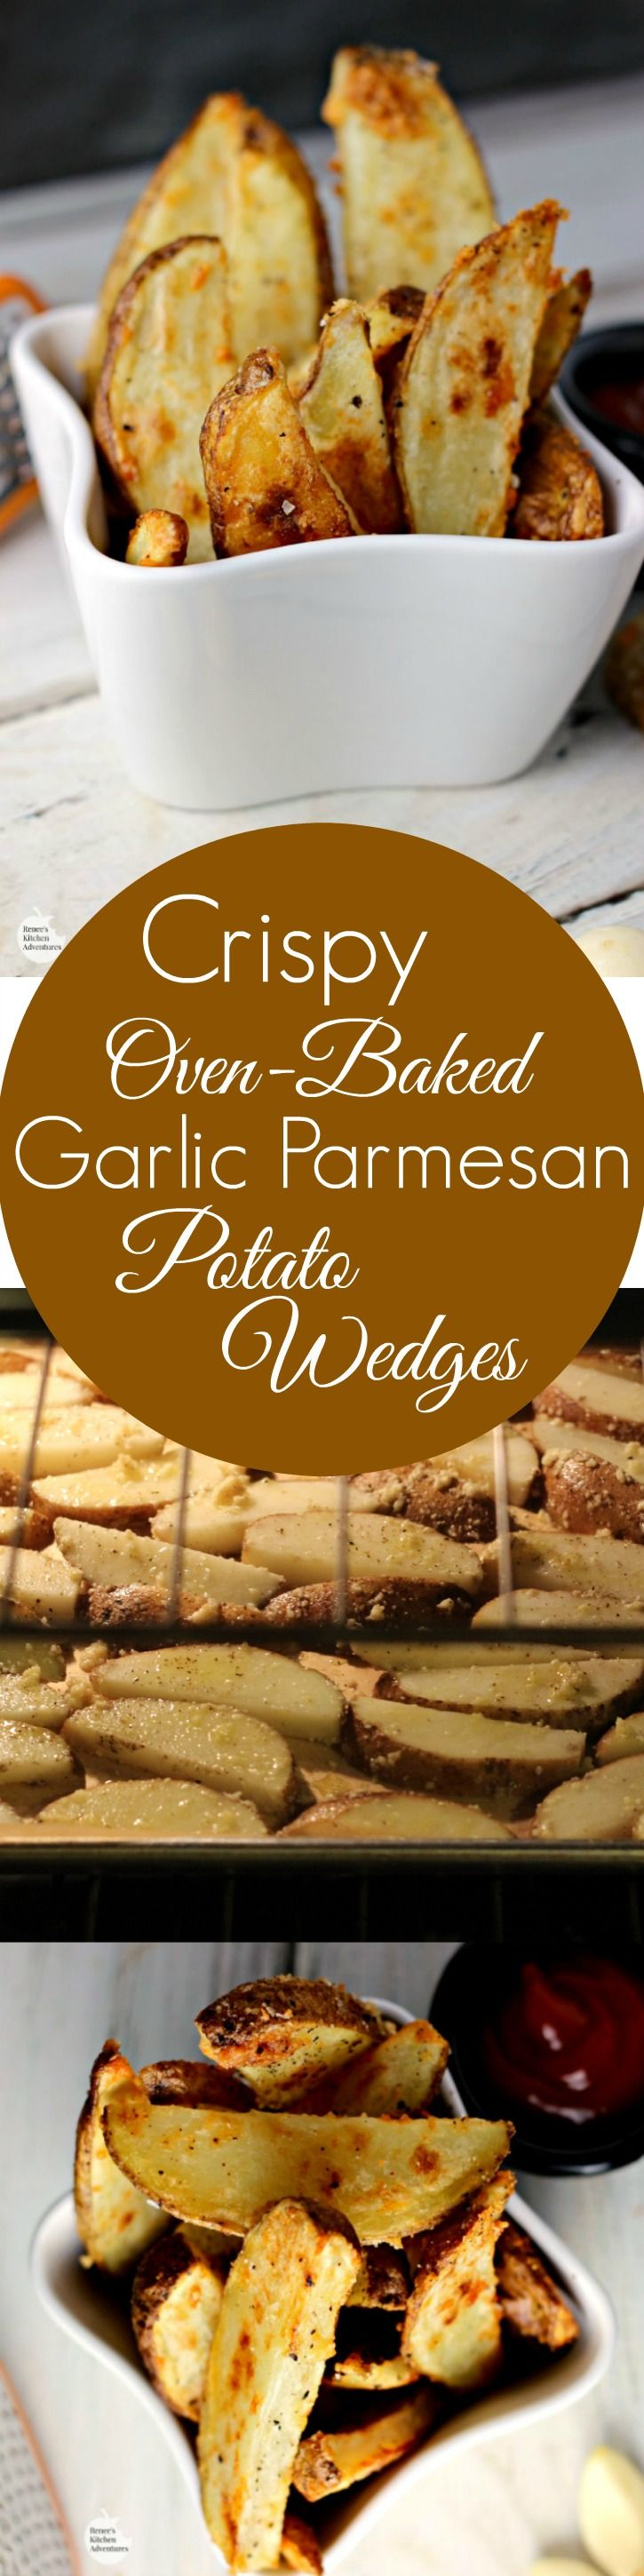 Crispy Oven-Baked Garlic Parmesan Potato Wedges | by Renee's Kitchen Adventures - A healthy side dish with a secret for perfectly crispy oven potatoes! Crunchy on the outside and fluffy on the inside!